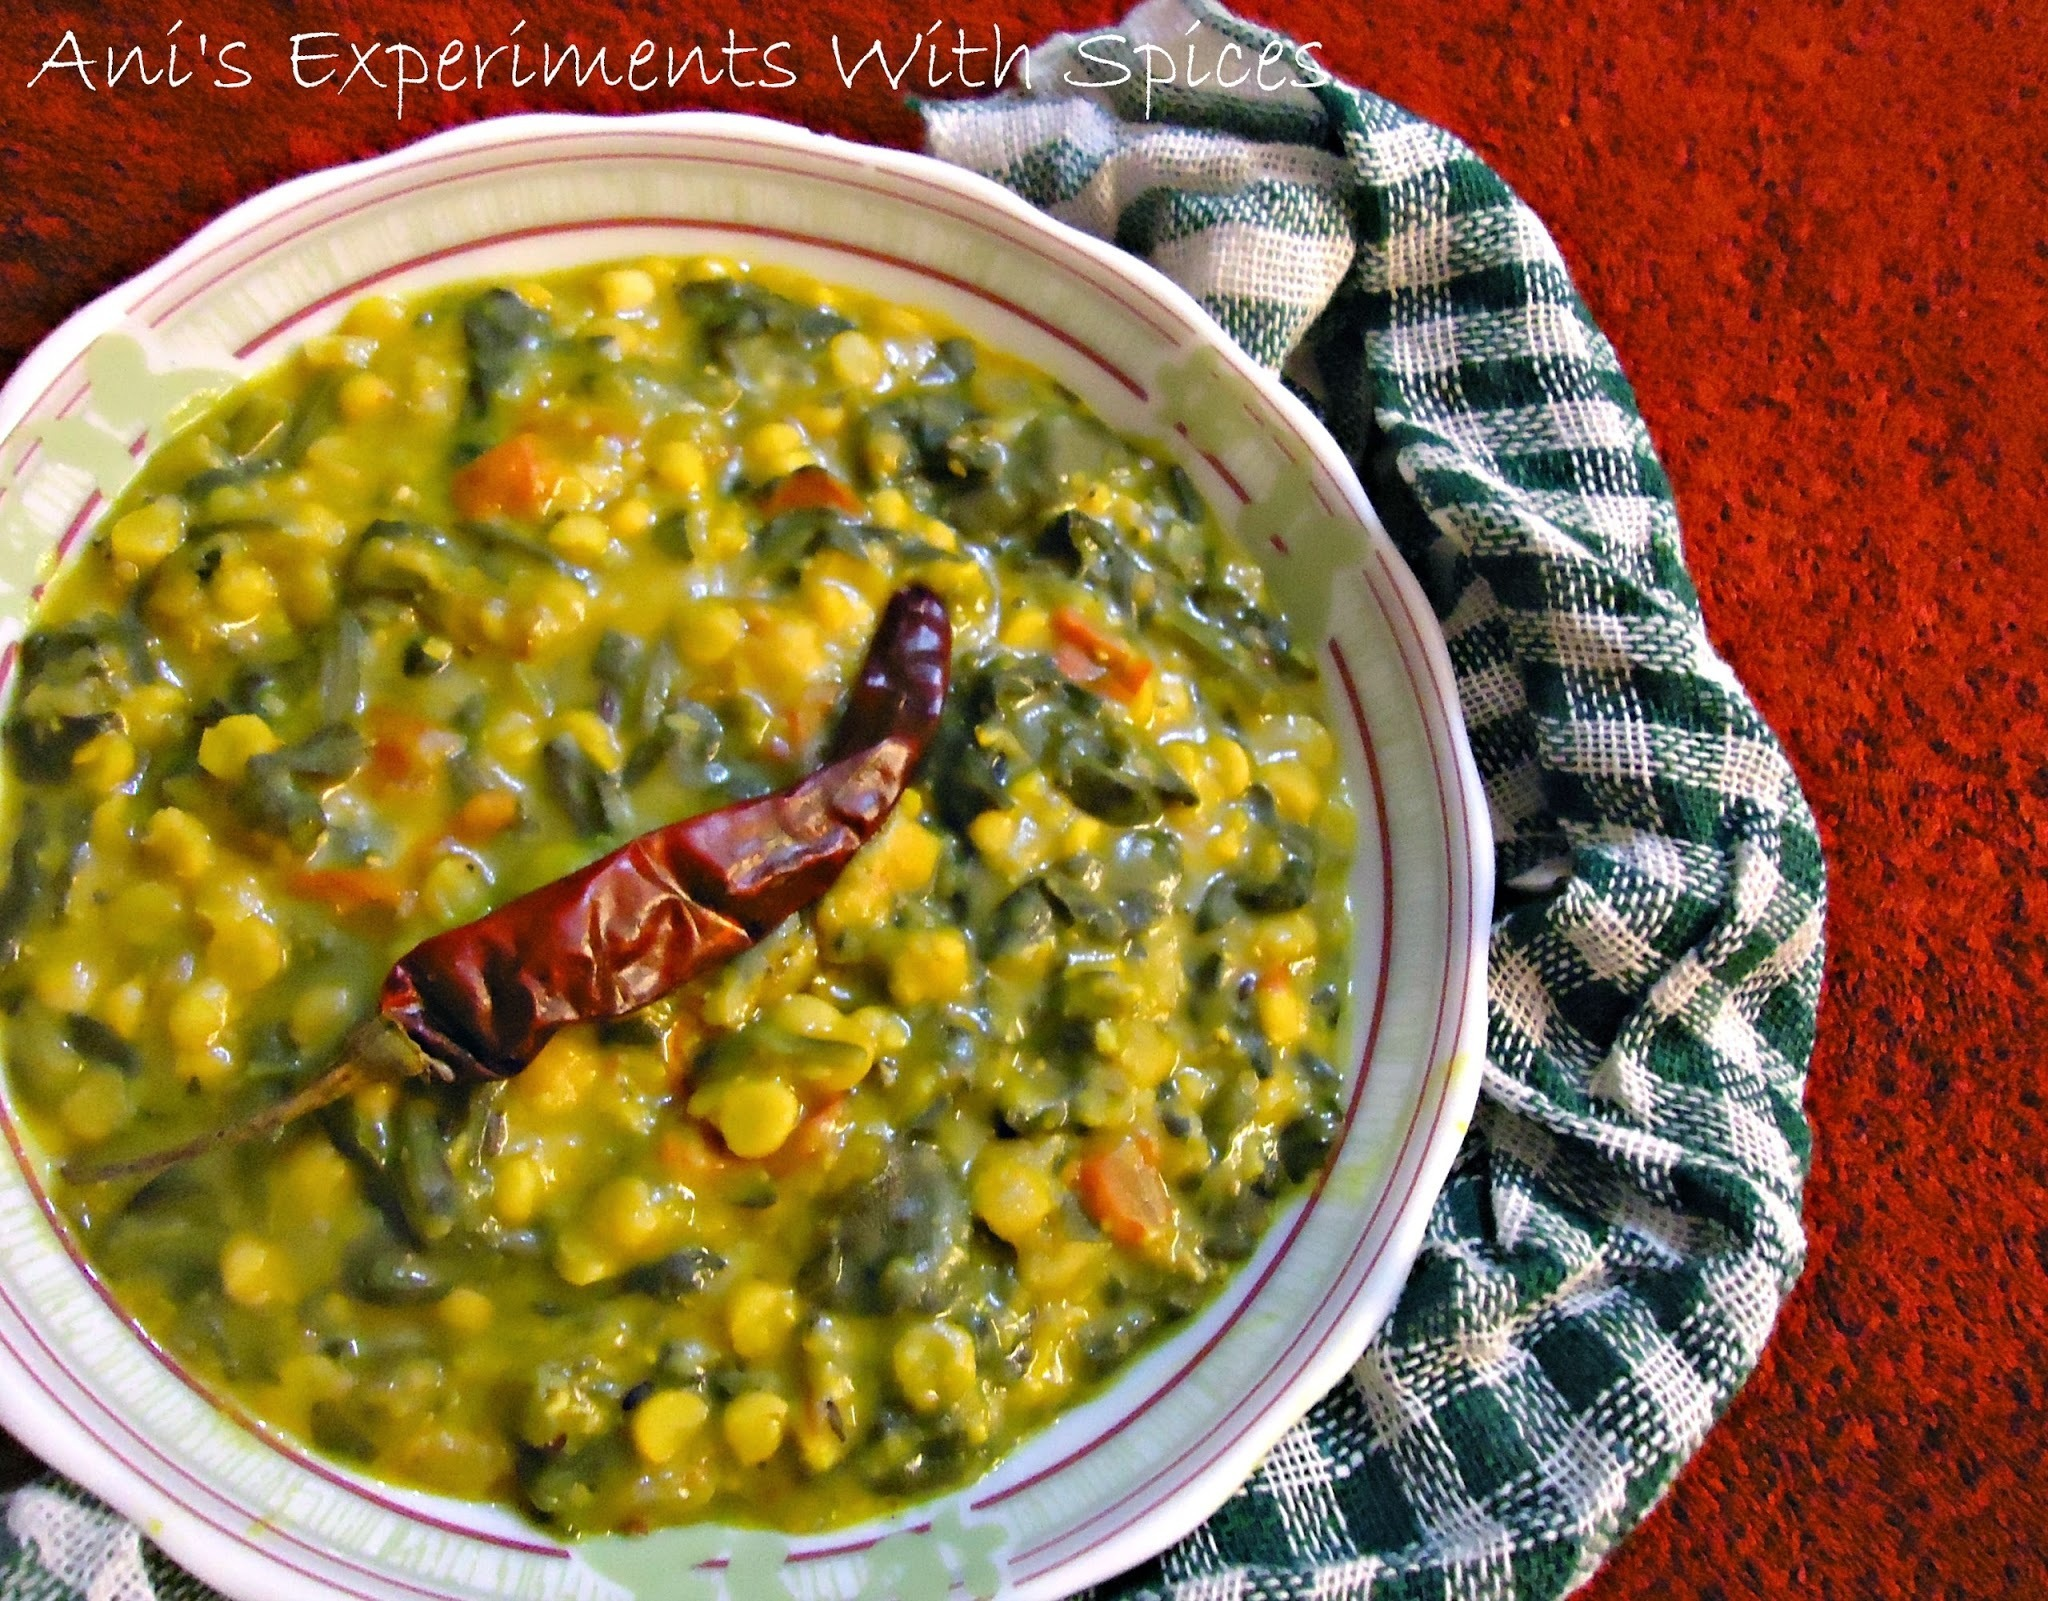 Chana Dal Palak (Split Yellow Chickpeas With Spinach) In the Microwave